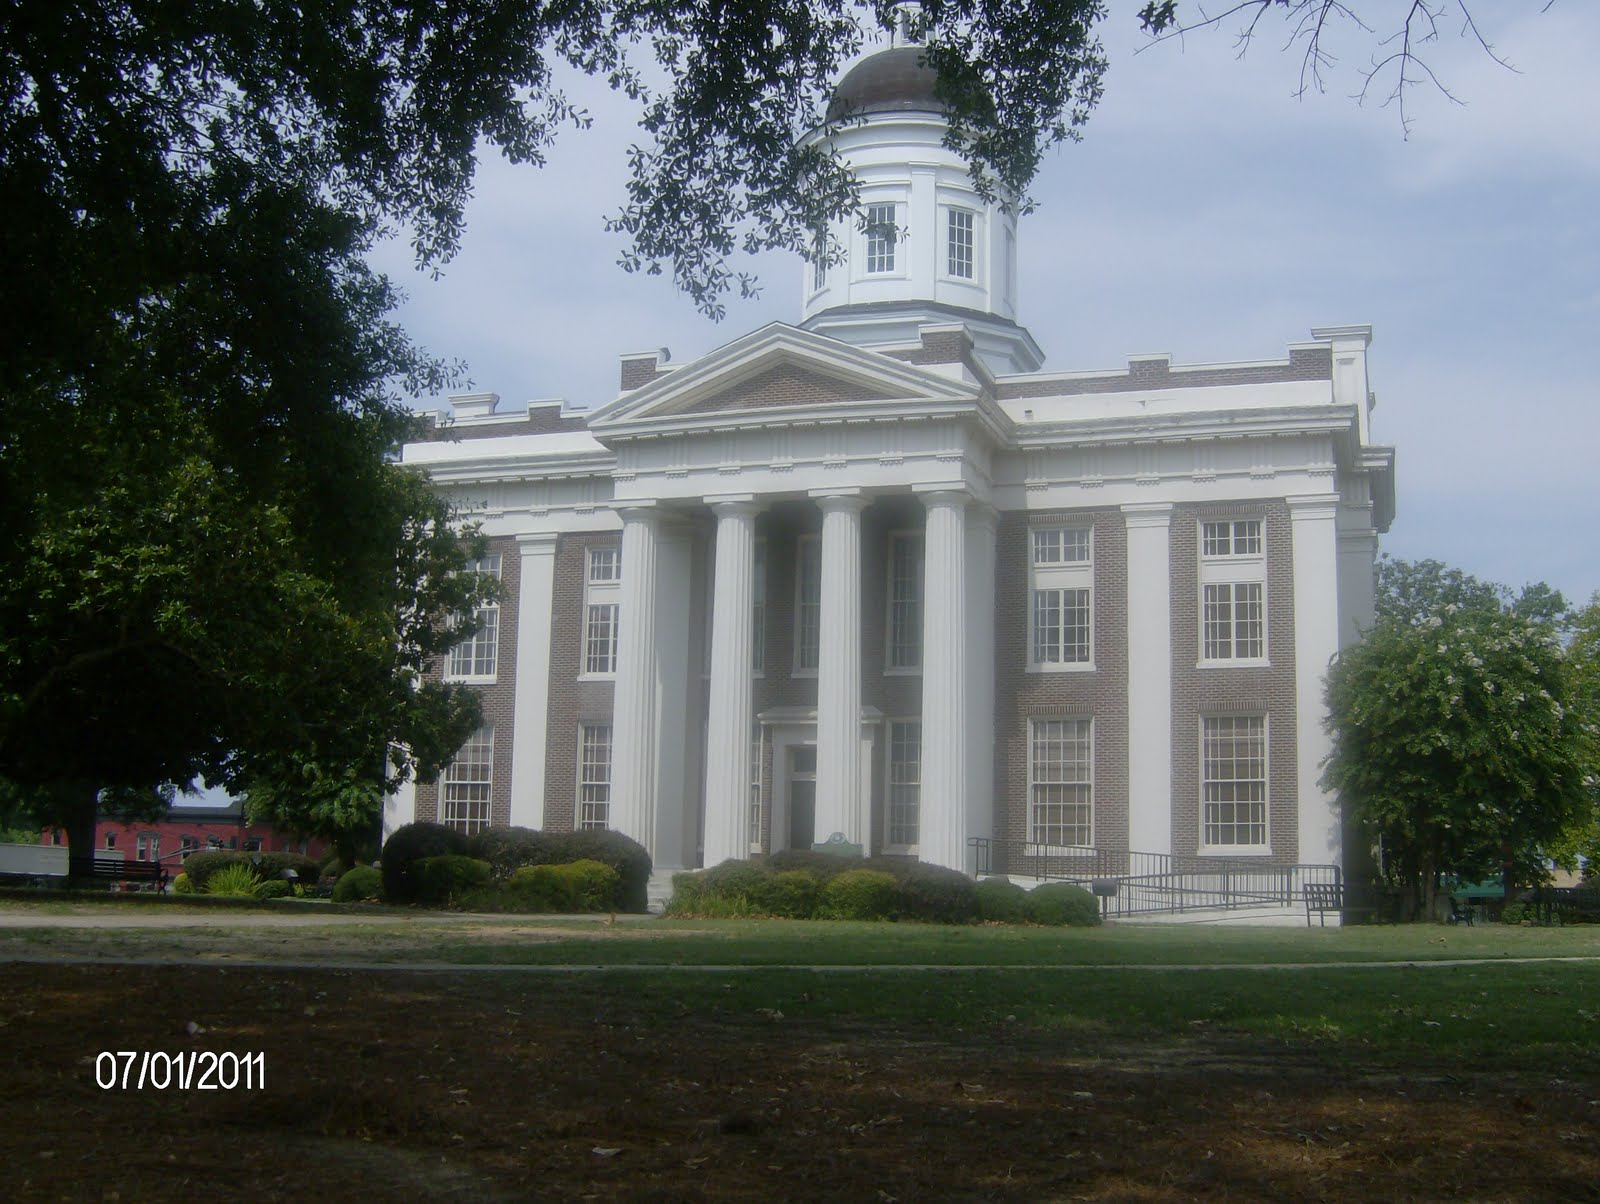 Mississippi madison county canton - Madison County Courthouse Canton Mississippi